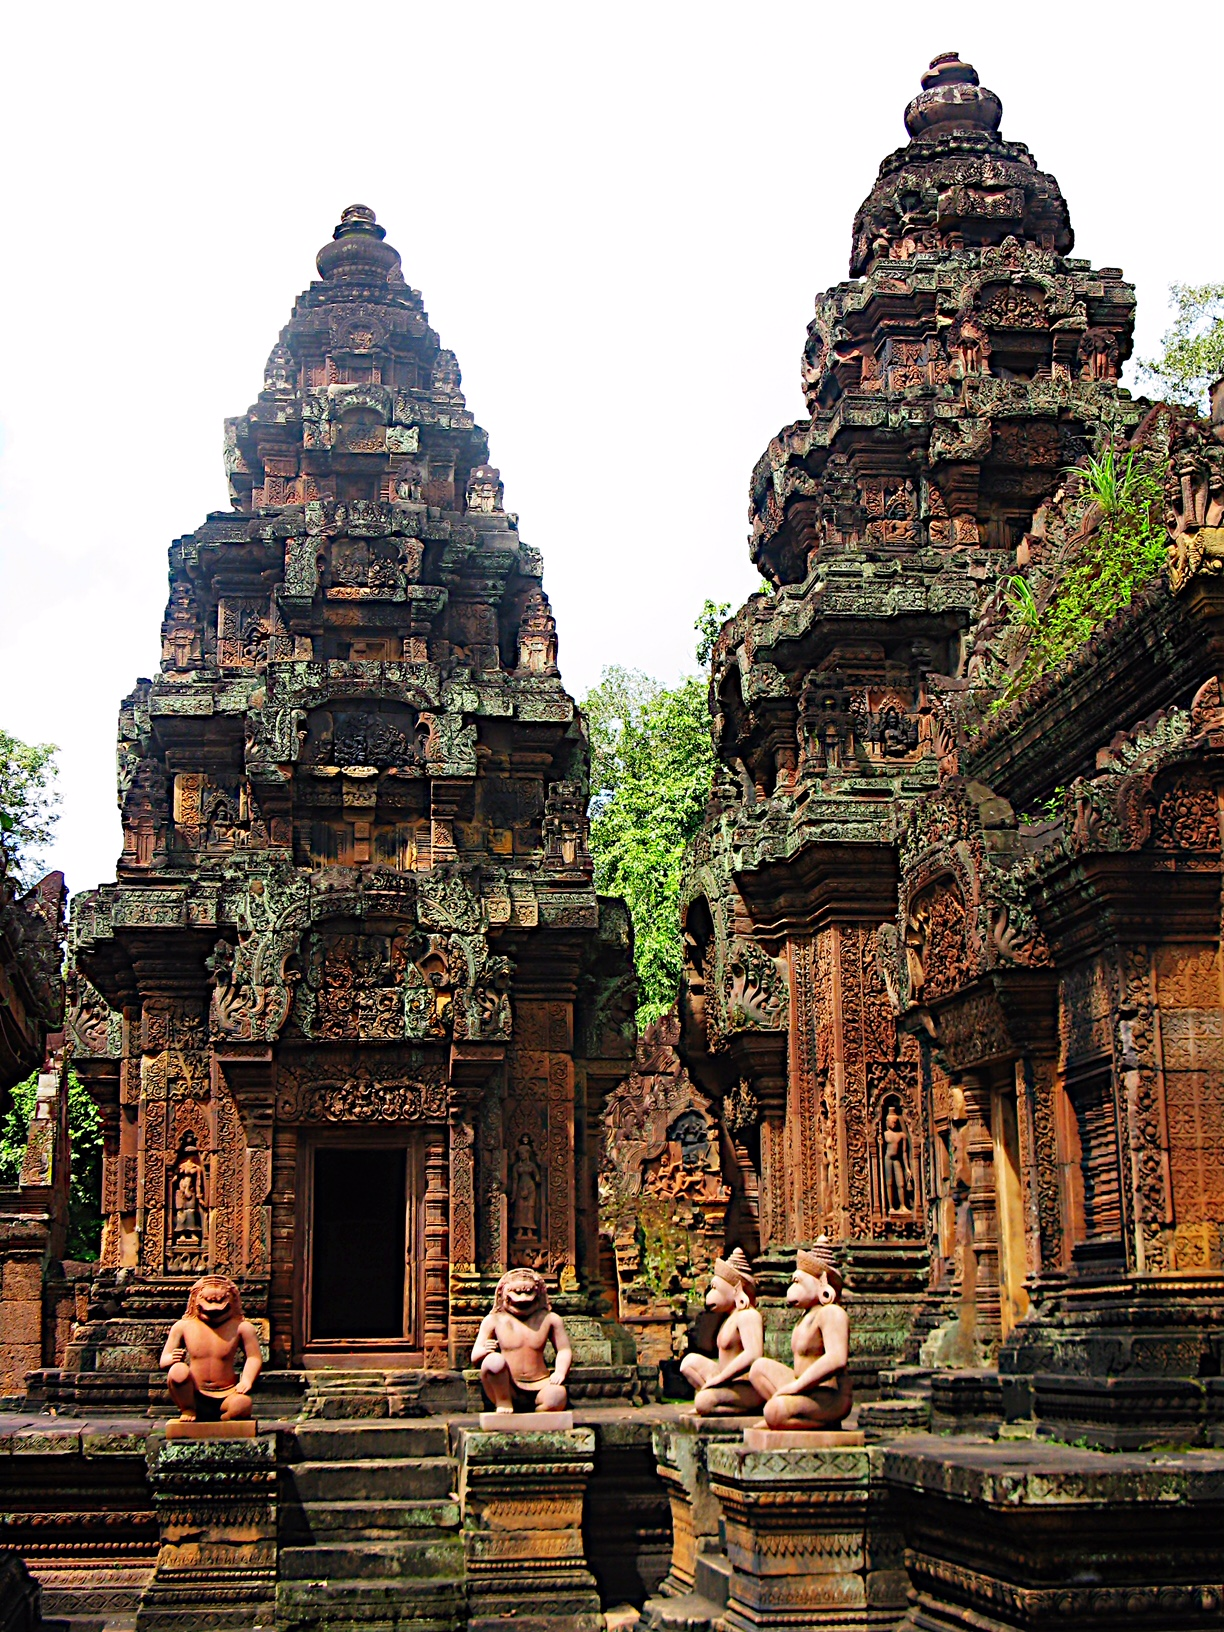 Banteay Srei was a citadel for women that housed libraries